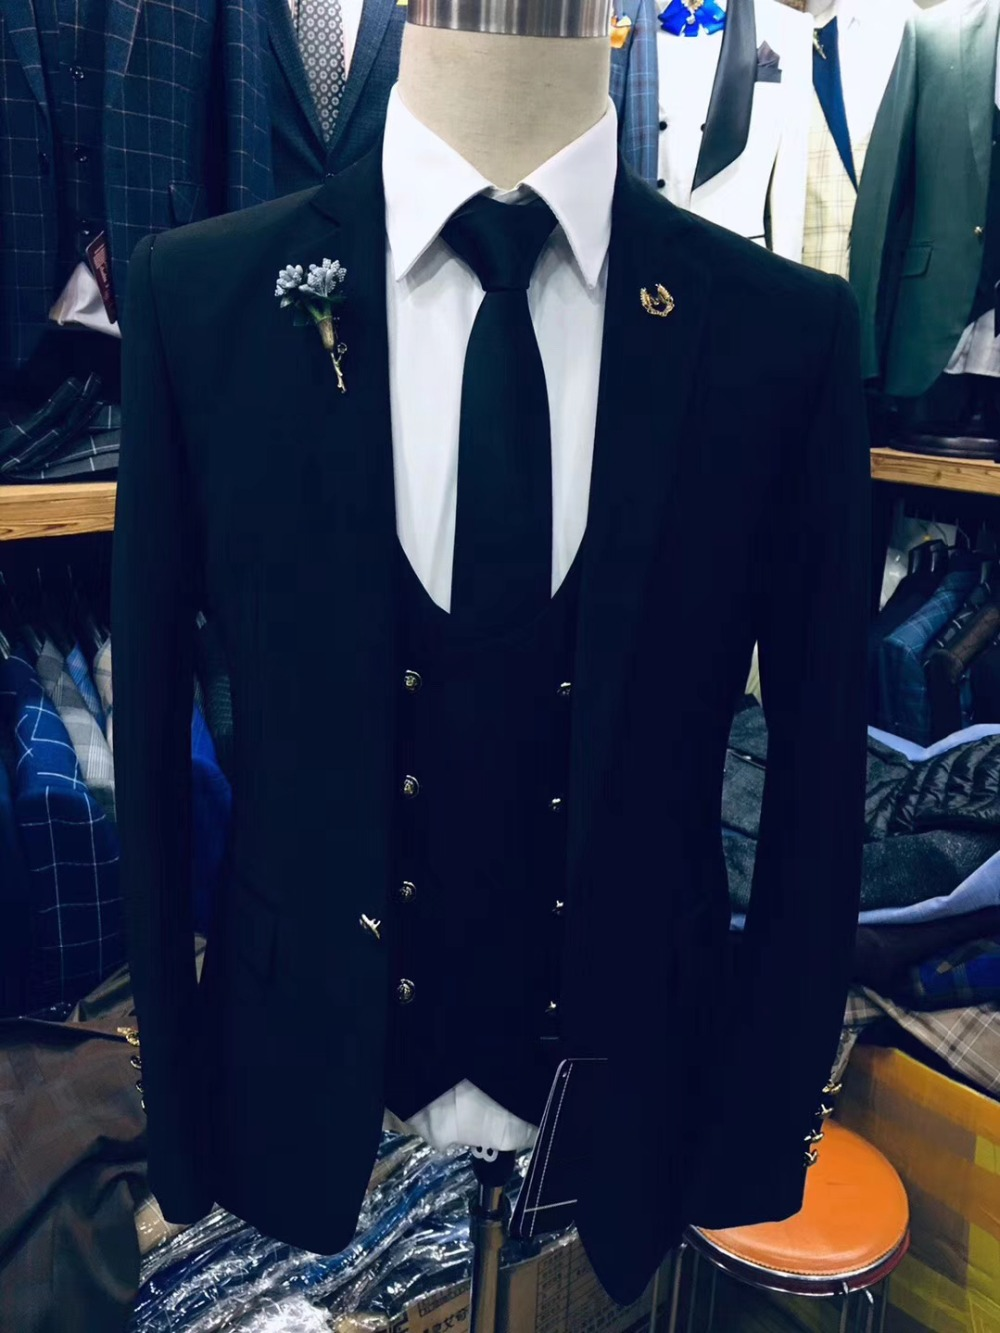 Black-Slim-Fit-Tuxedos-Groom-Wedding-Suits-For-Men-New-Design-Fashion-Formal-Party-Prom-Male (2)